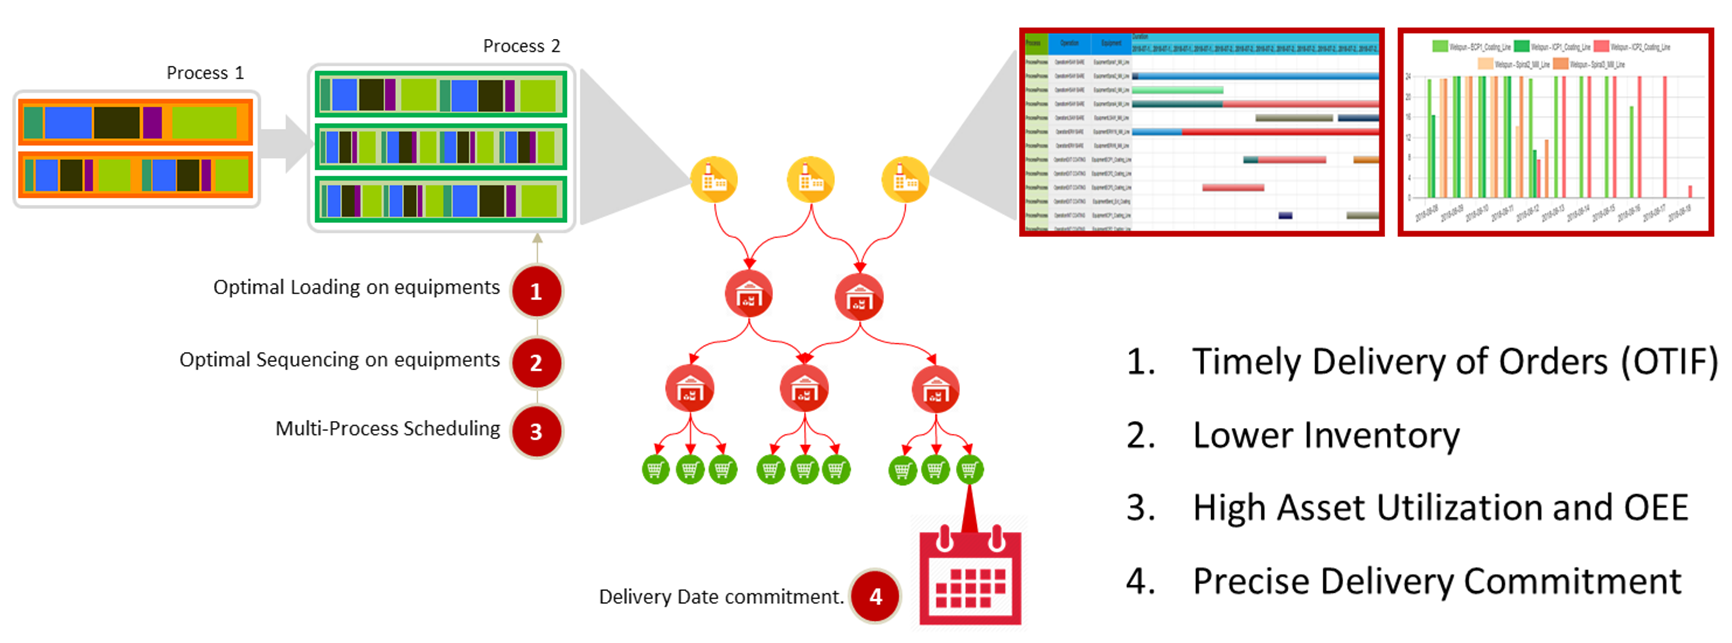 Production Planner Deliverables In A Snapshot_Image